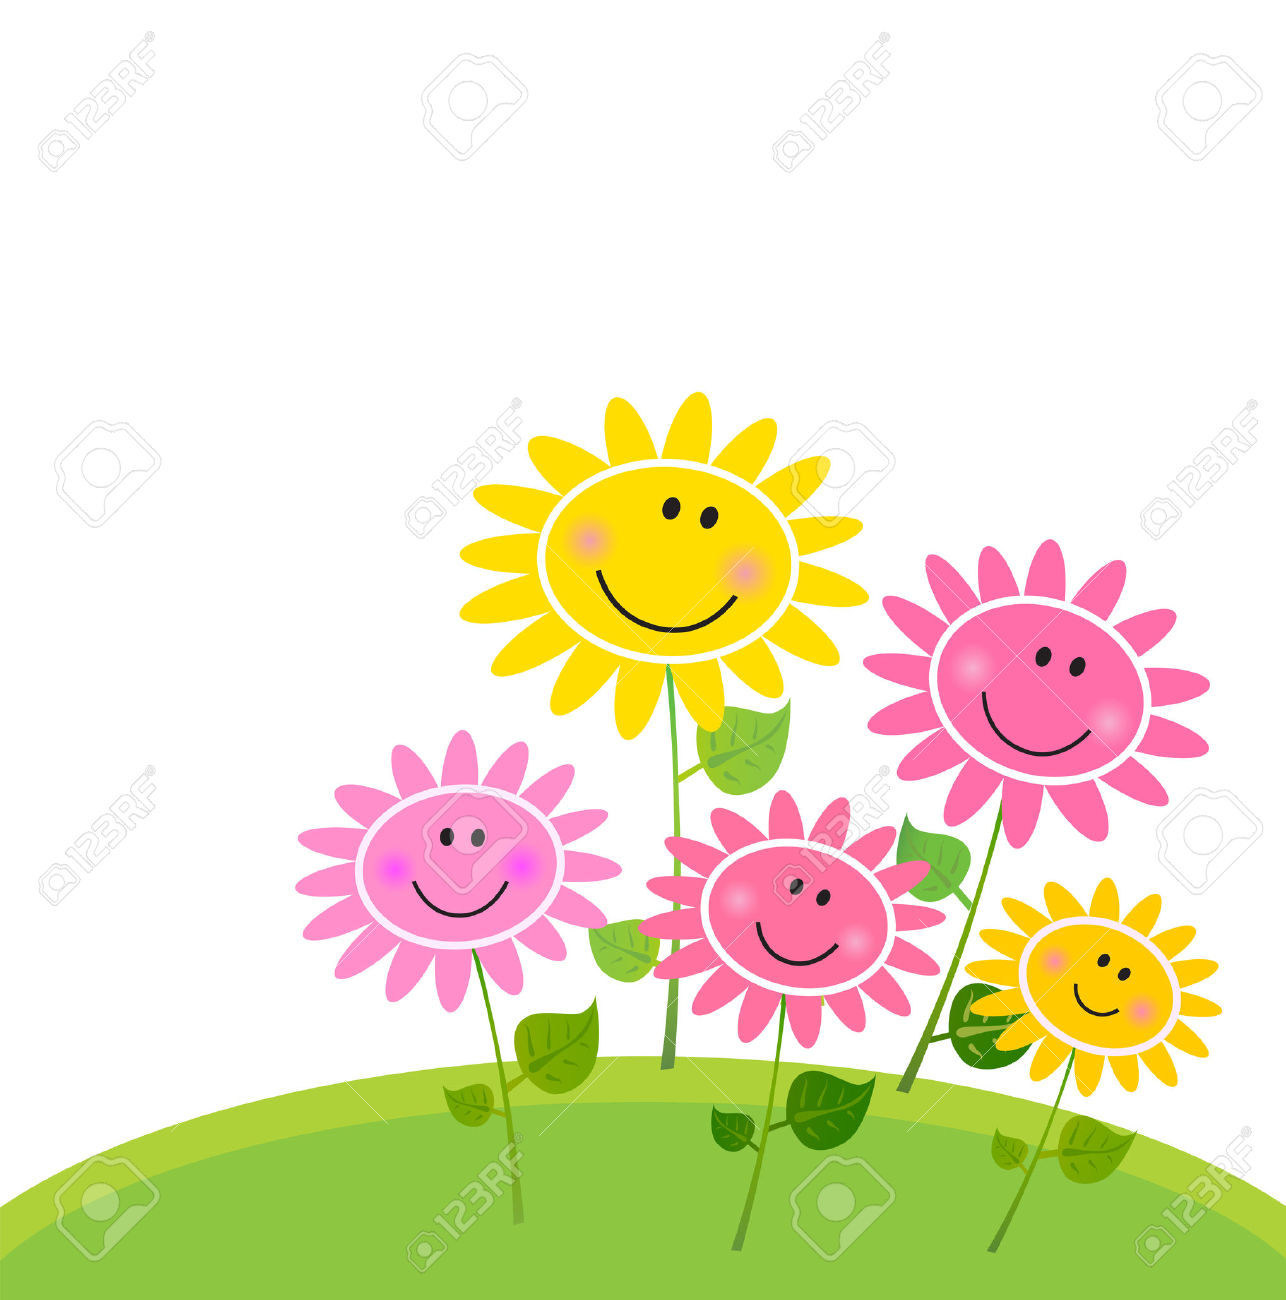 May flowers cartoon jpg free download May flowers cartoon - ClipartFest jpg free download